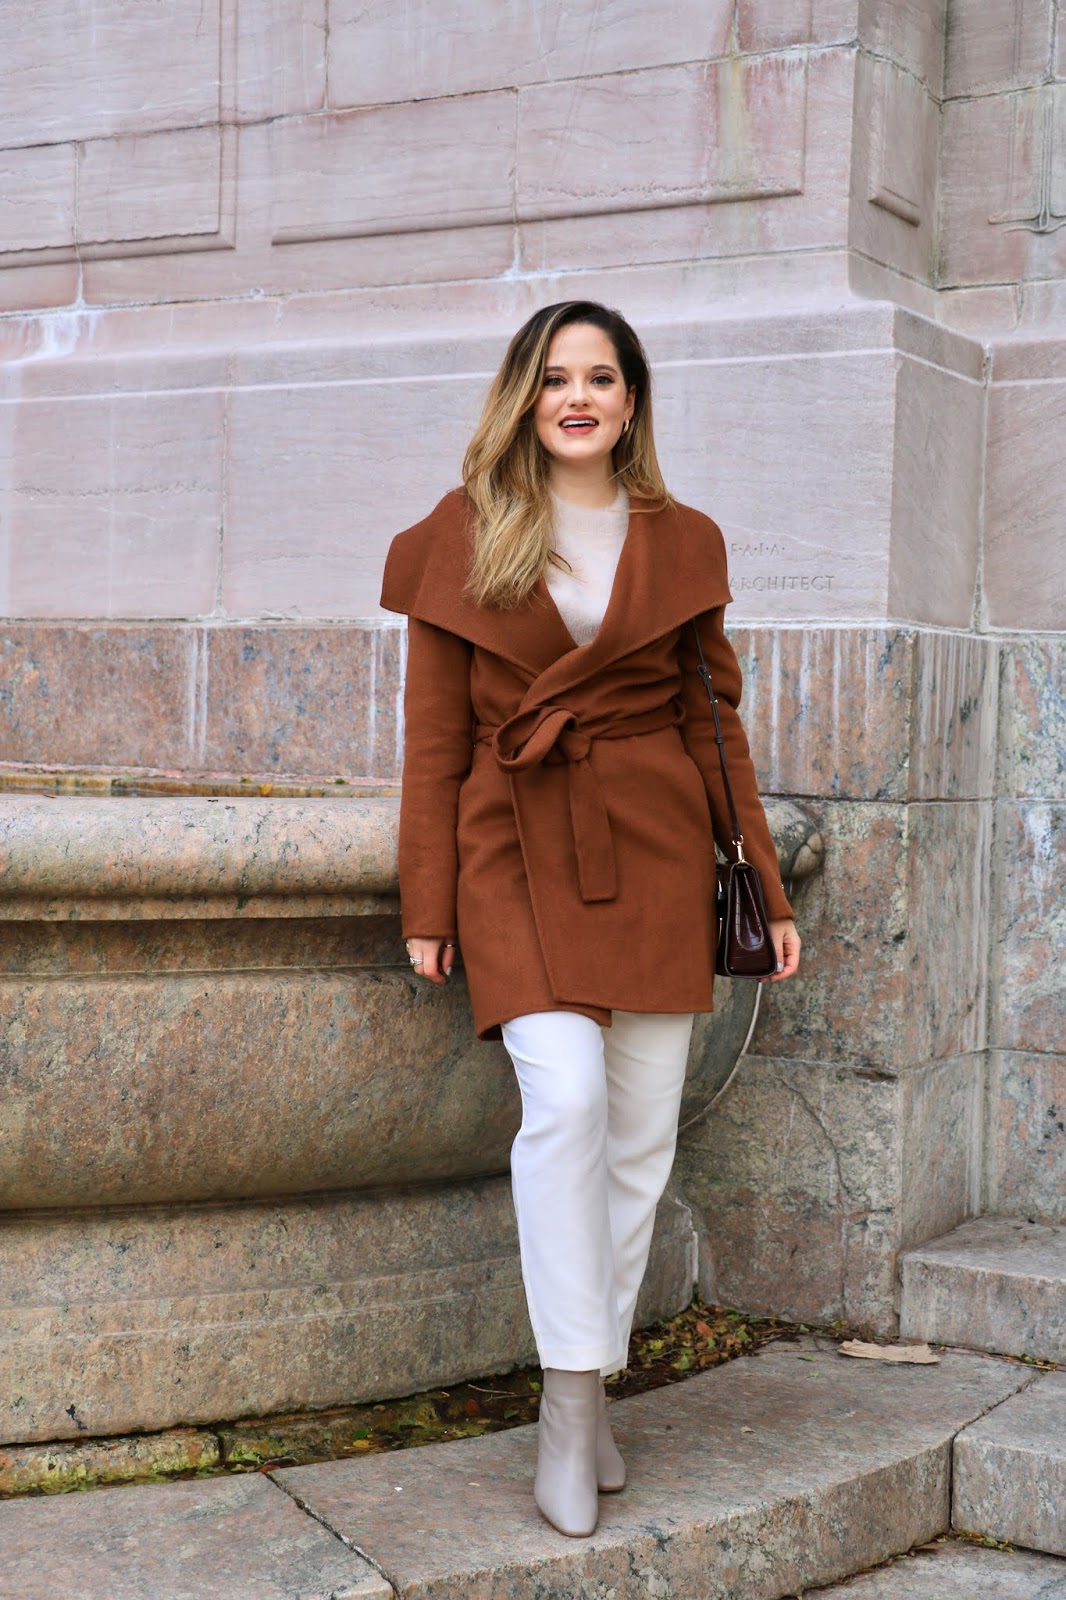 Nyc fashion influencer Kathleen Harper wearing an outfit with an Elie Tahari wrap coat.